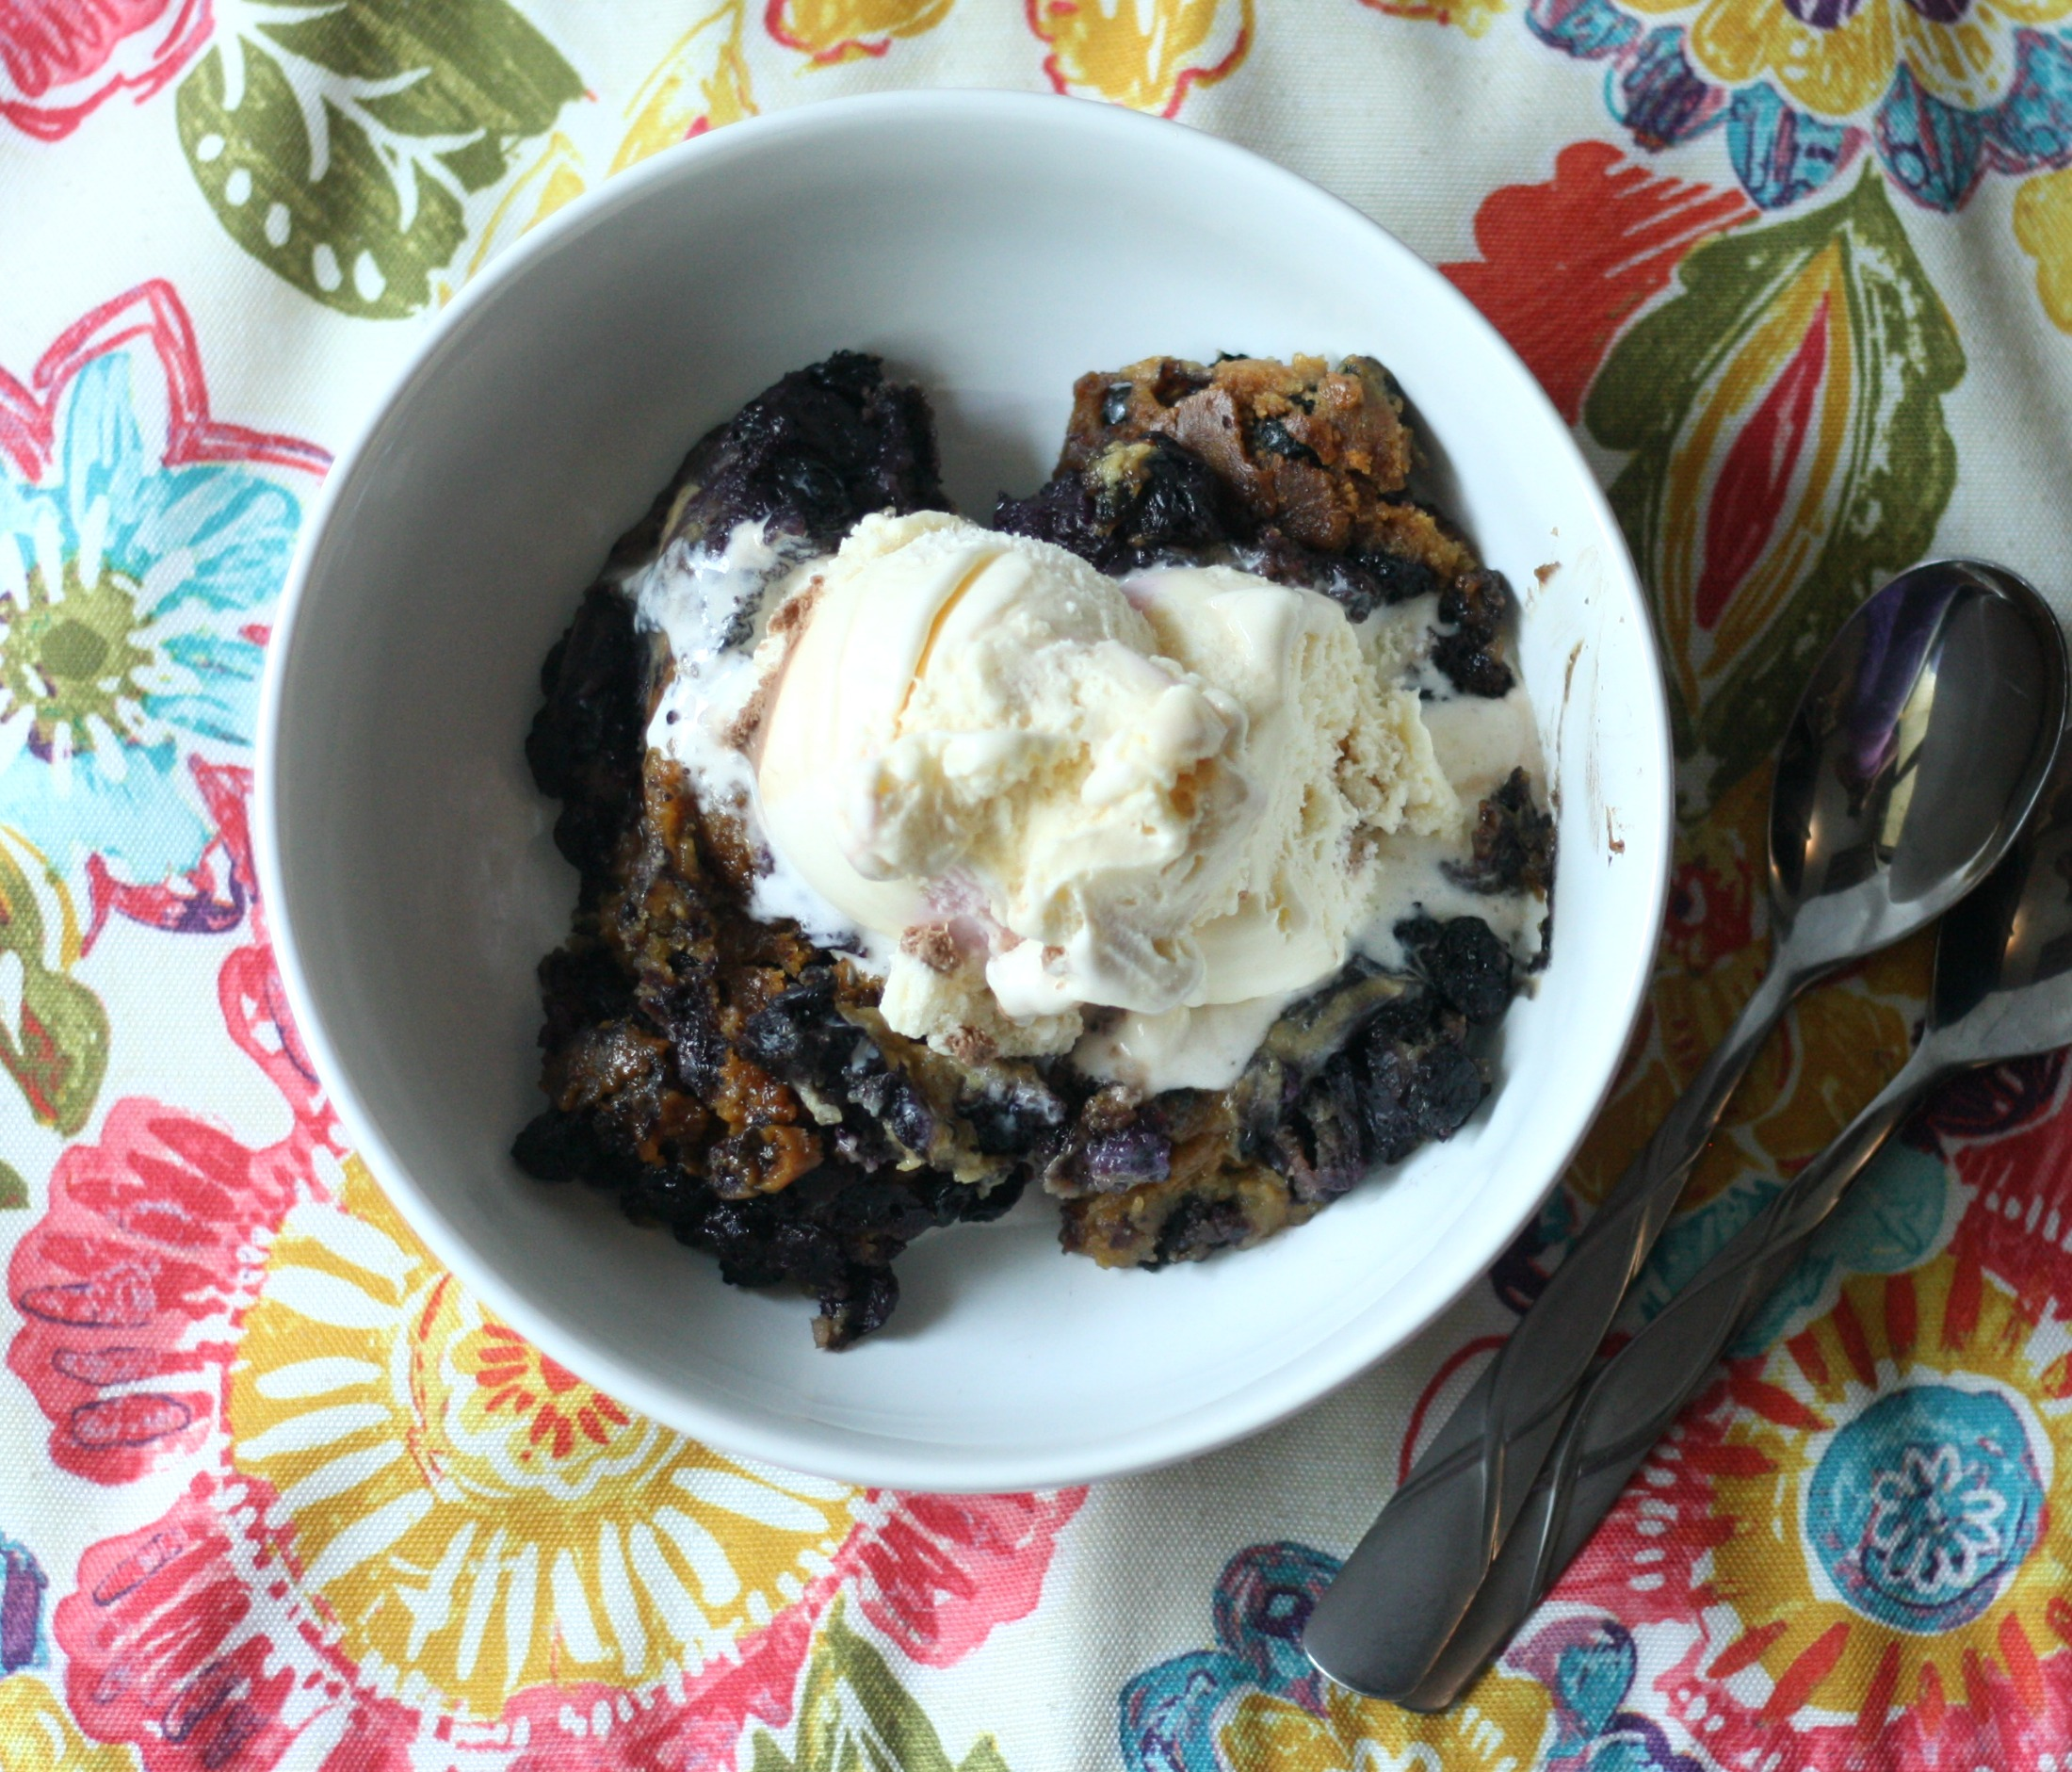 blueberry cobbler with ice cream